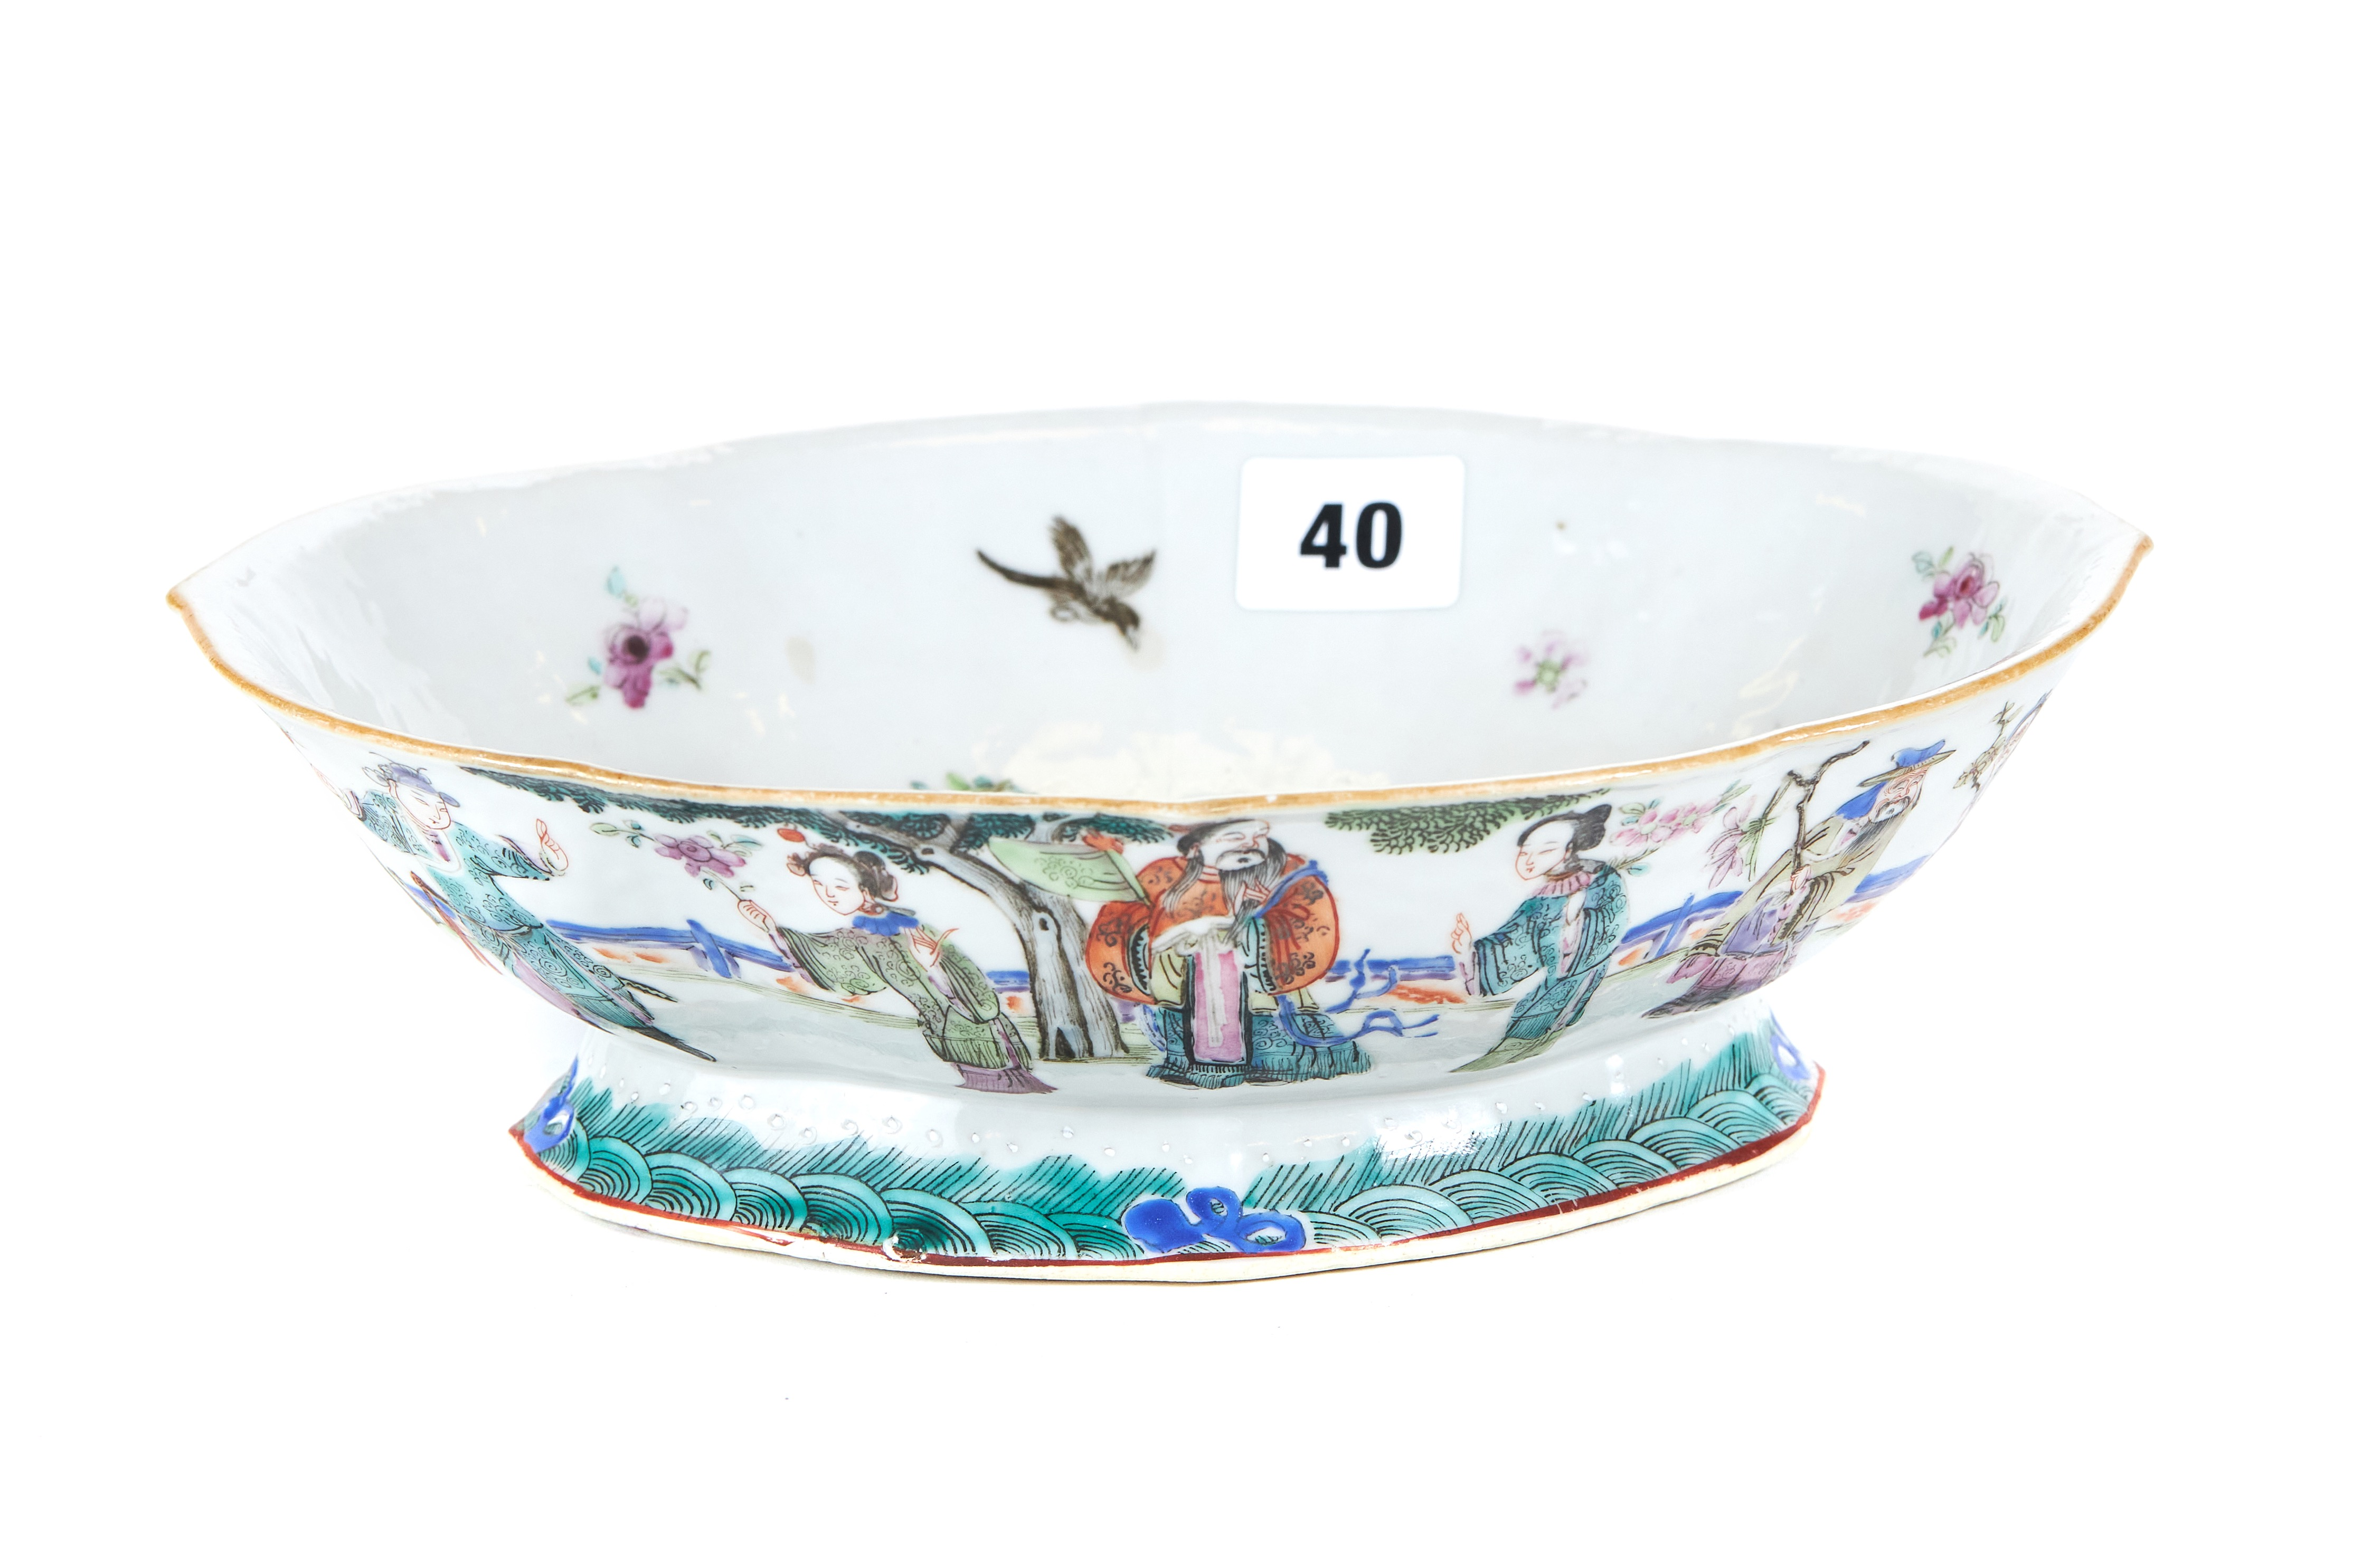 AN EARLY 19TH CENTURY CHINESE PORCELAIN DISH of lobed oval form,